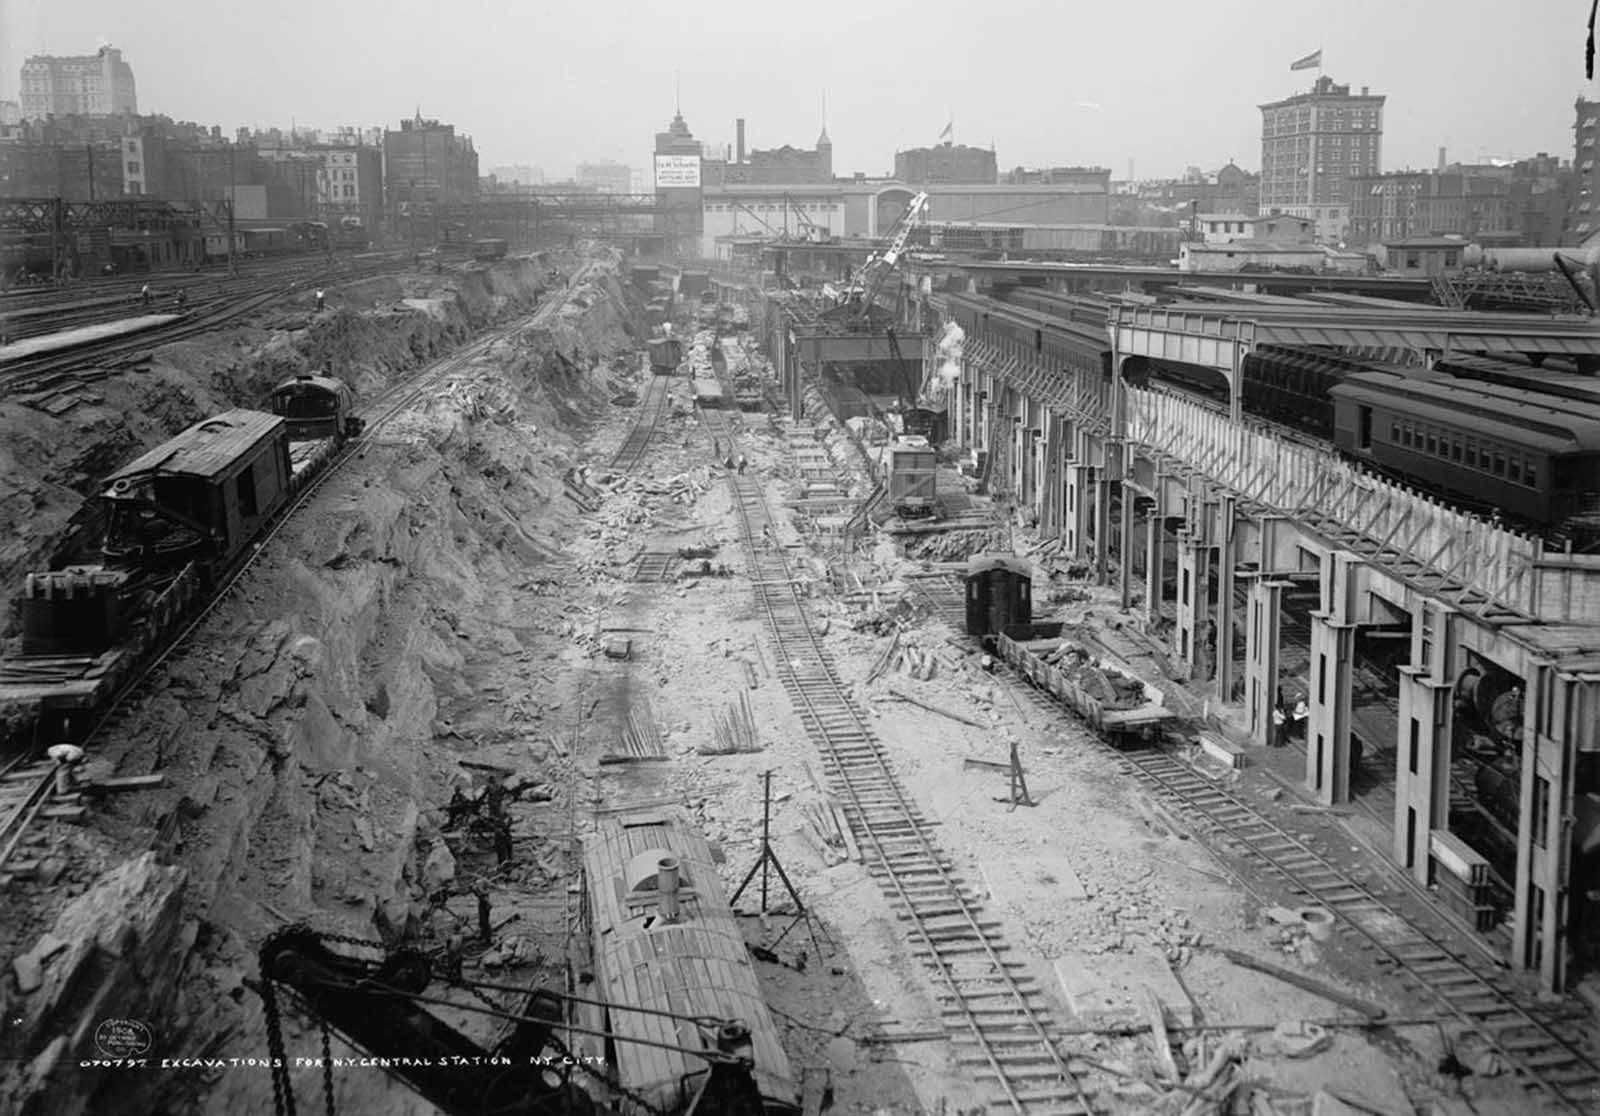 Excavations for the construction of Grand Central Station in New York City, in 1908.